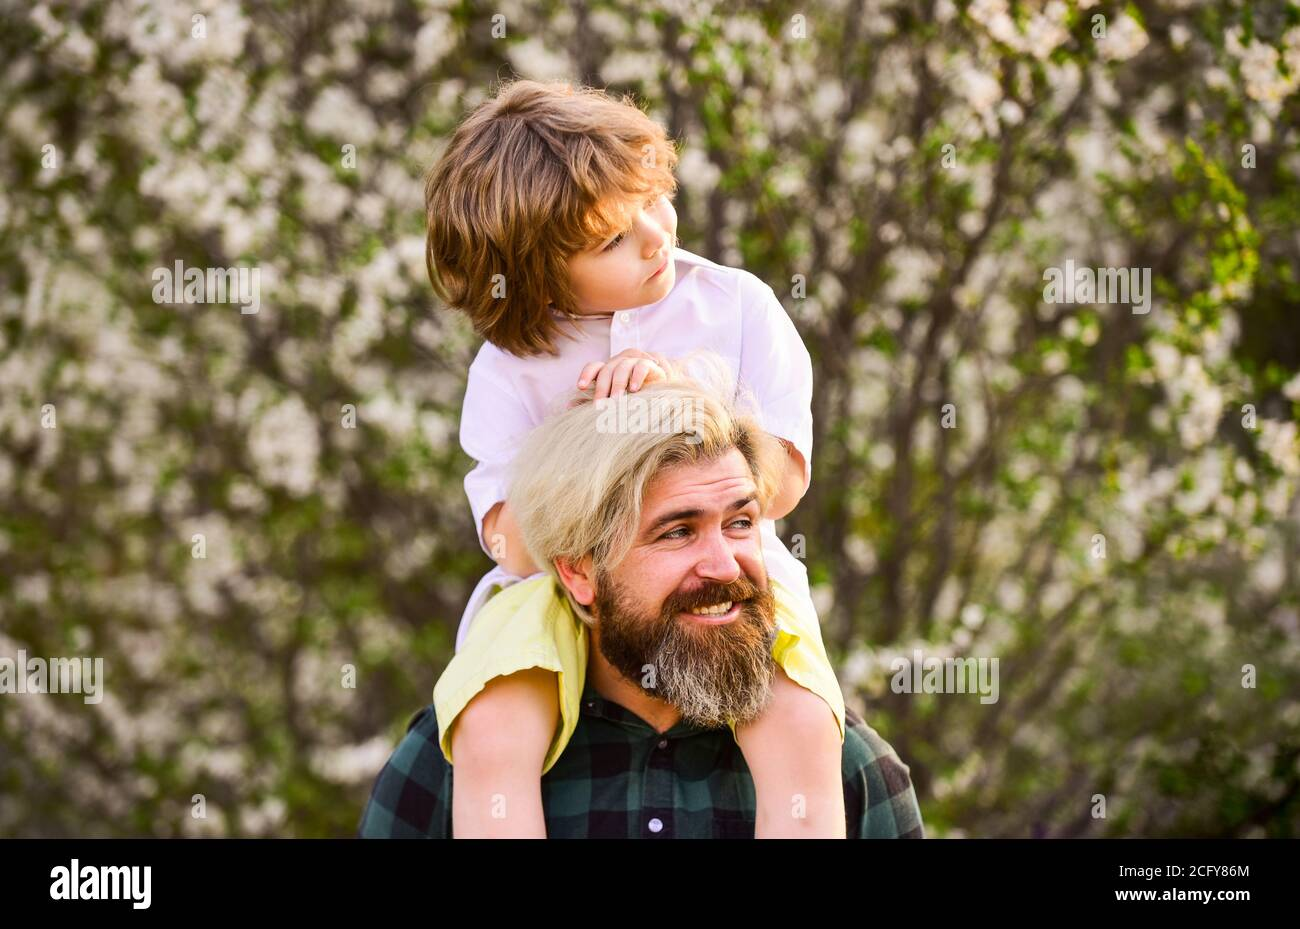 Happy family. Fathers day. Child having fun with dad. Little boy and father in nature background. Springtime. Hipster piggybacking baby. Bearded brutal man good father. Dad and son. Best dad ever. Stock Photo